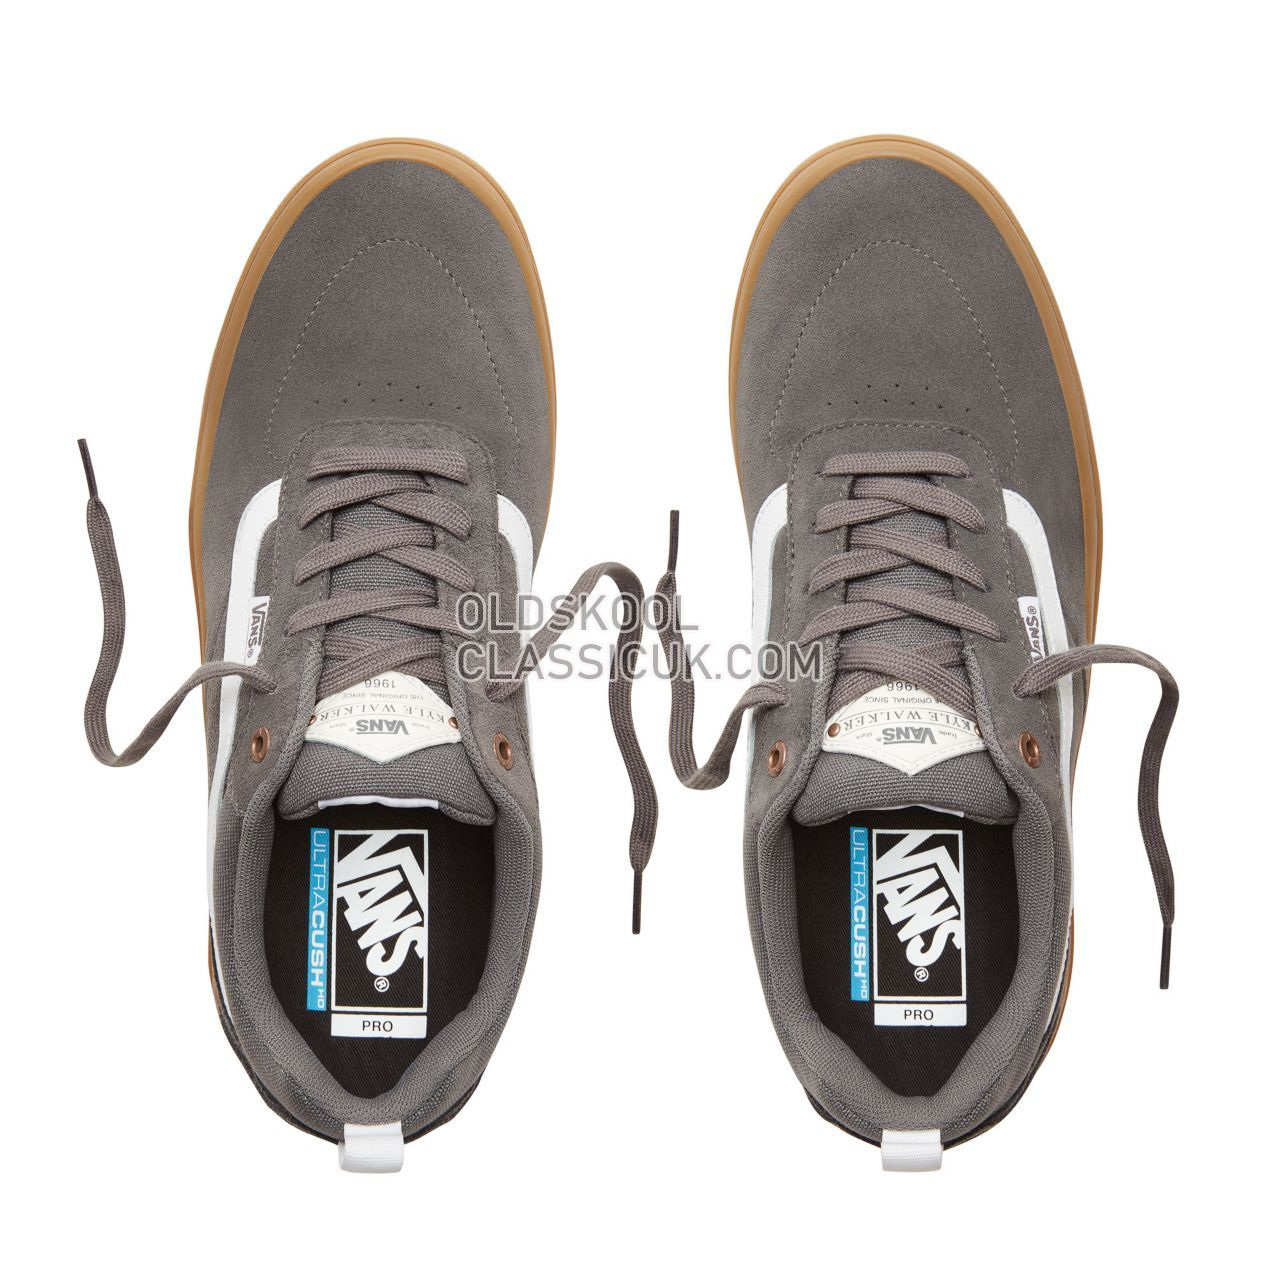 41faca55a1 Vans Kyle Walker Pro Sneakers Mens Pewter Light Gum VA2XSGKT9 Shoes - £54